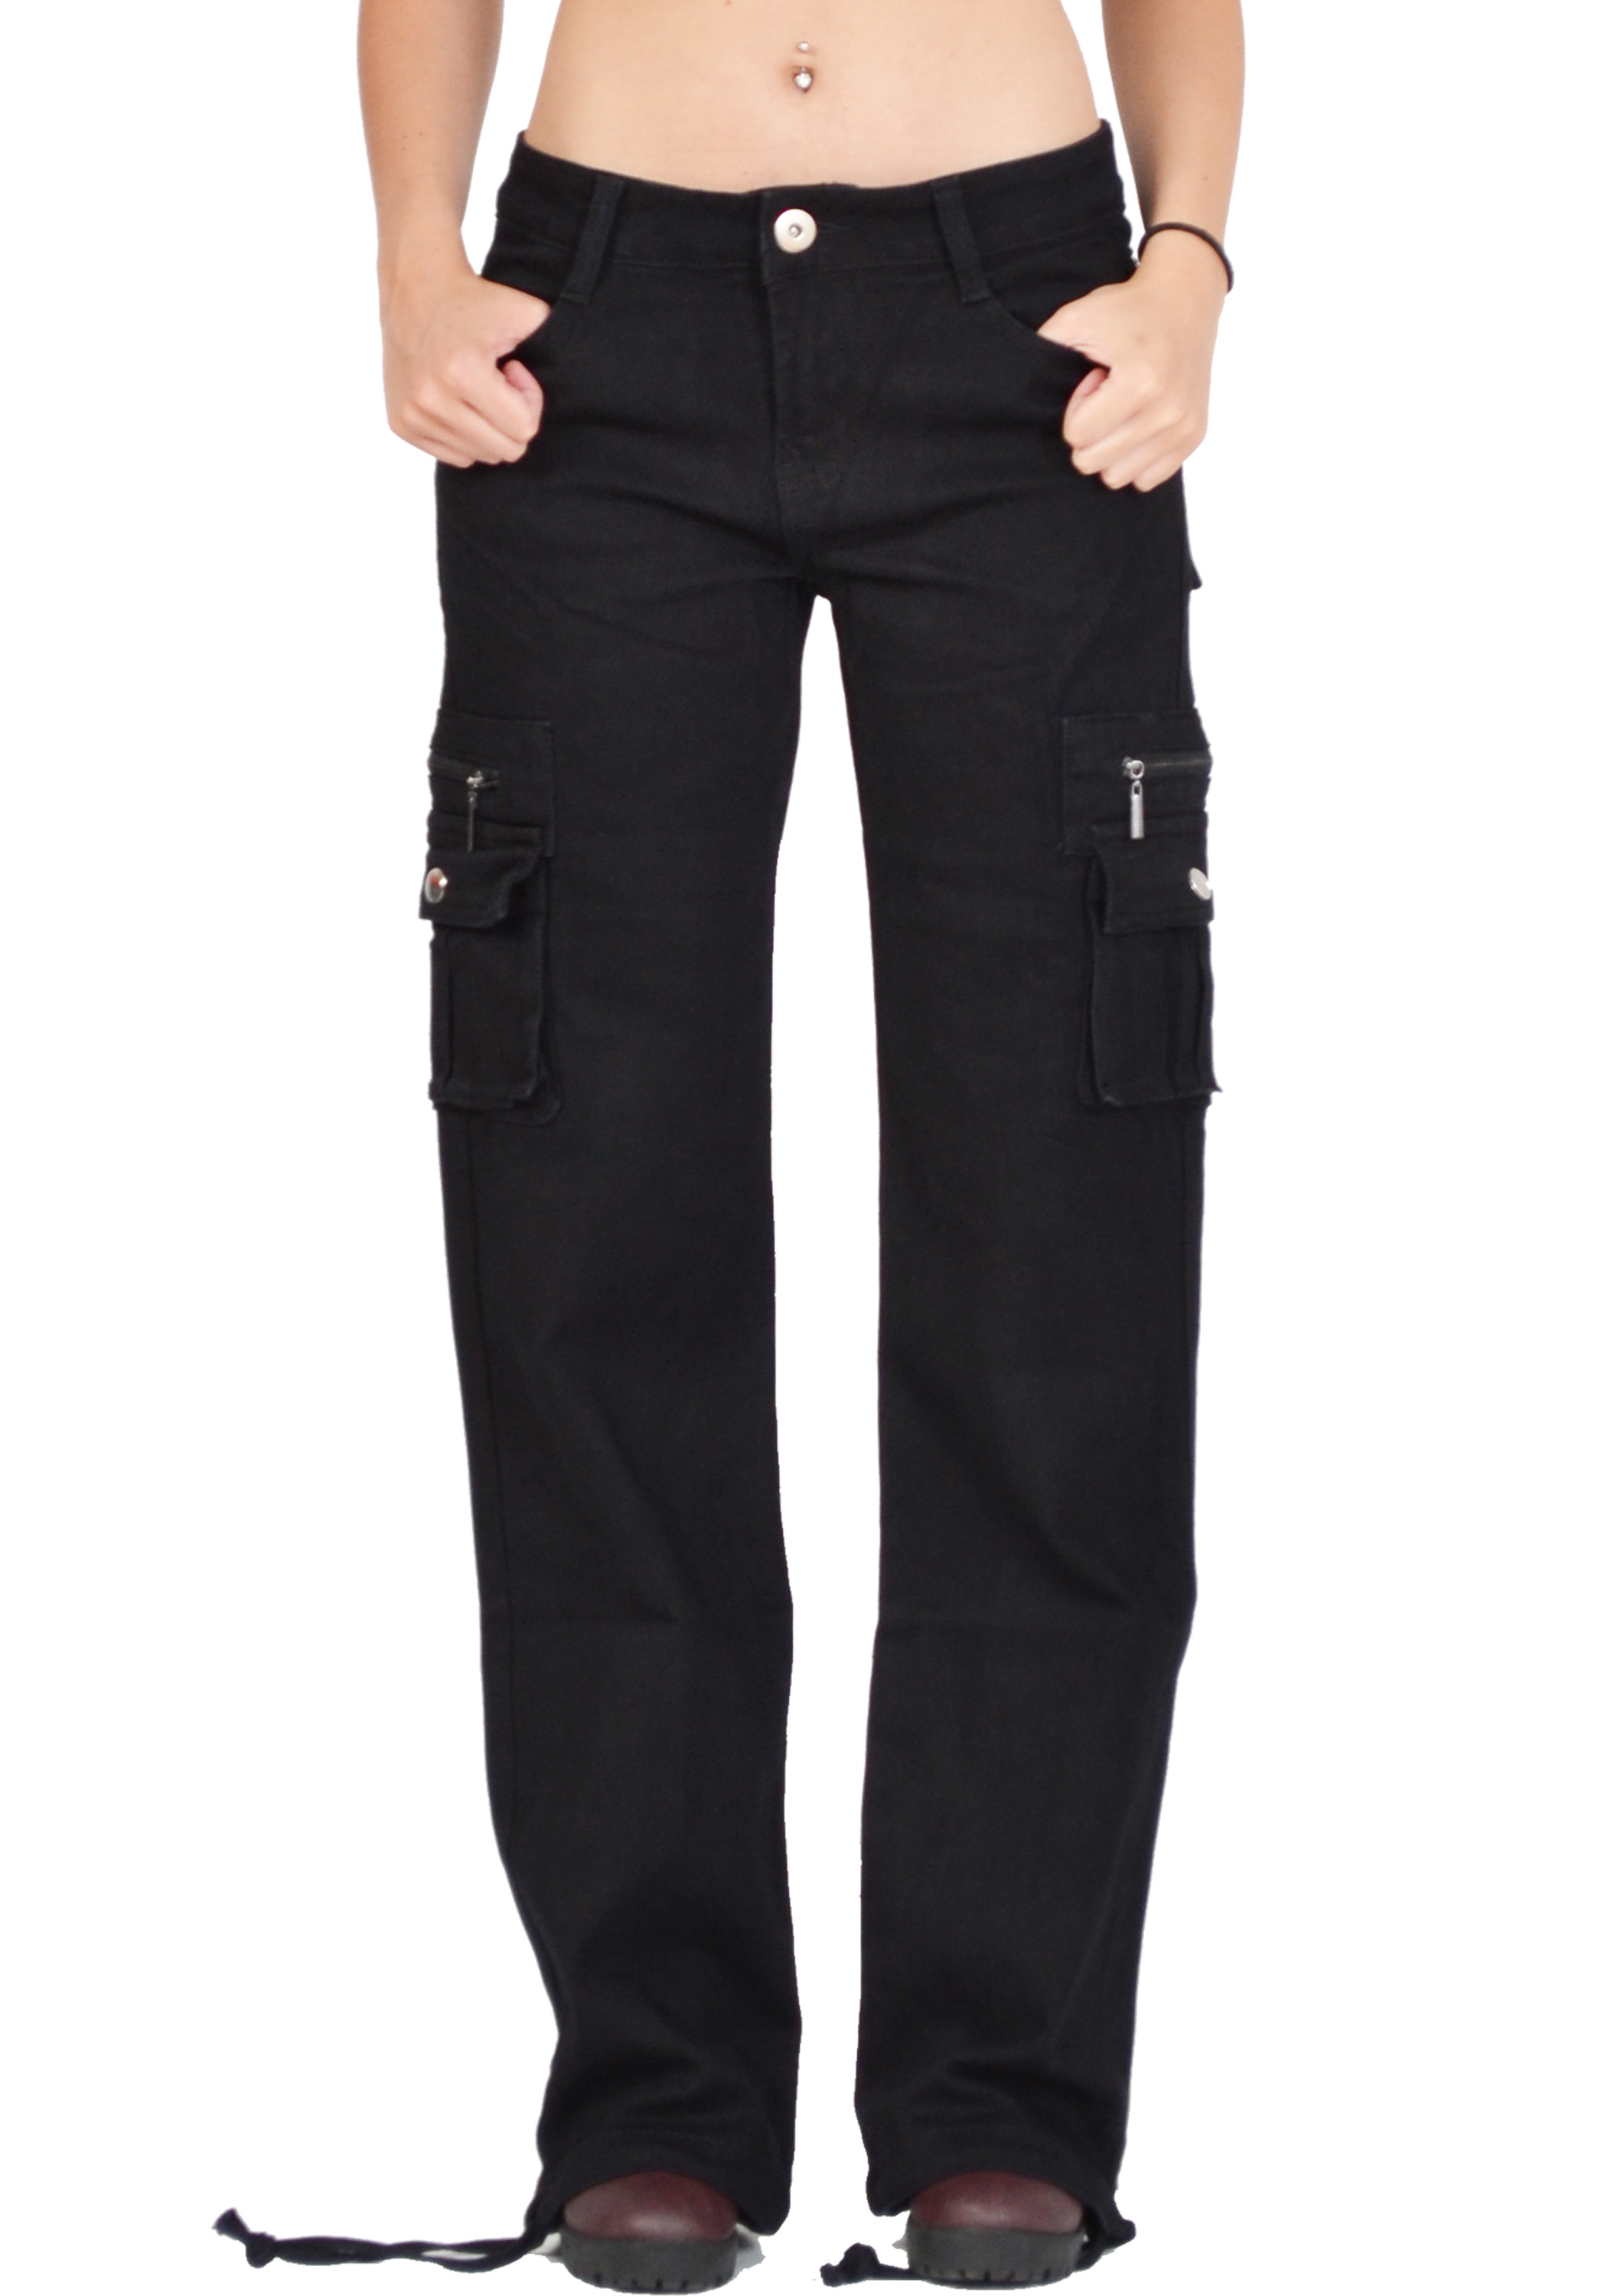 Women's Cargo pants Nod to the military trend with a pair of cargo pants. Choose a skinny cut like J Brand's Houlihan or Maverick pants for extra fashion points and style them with your favorite high heels or .